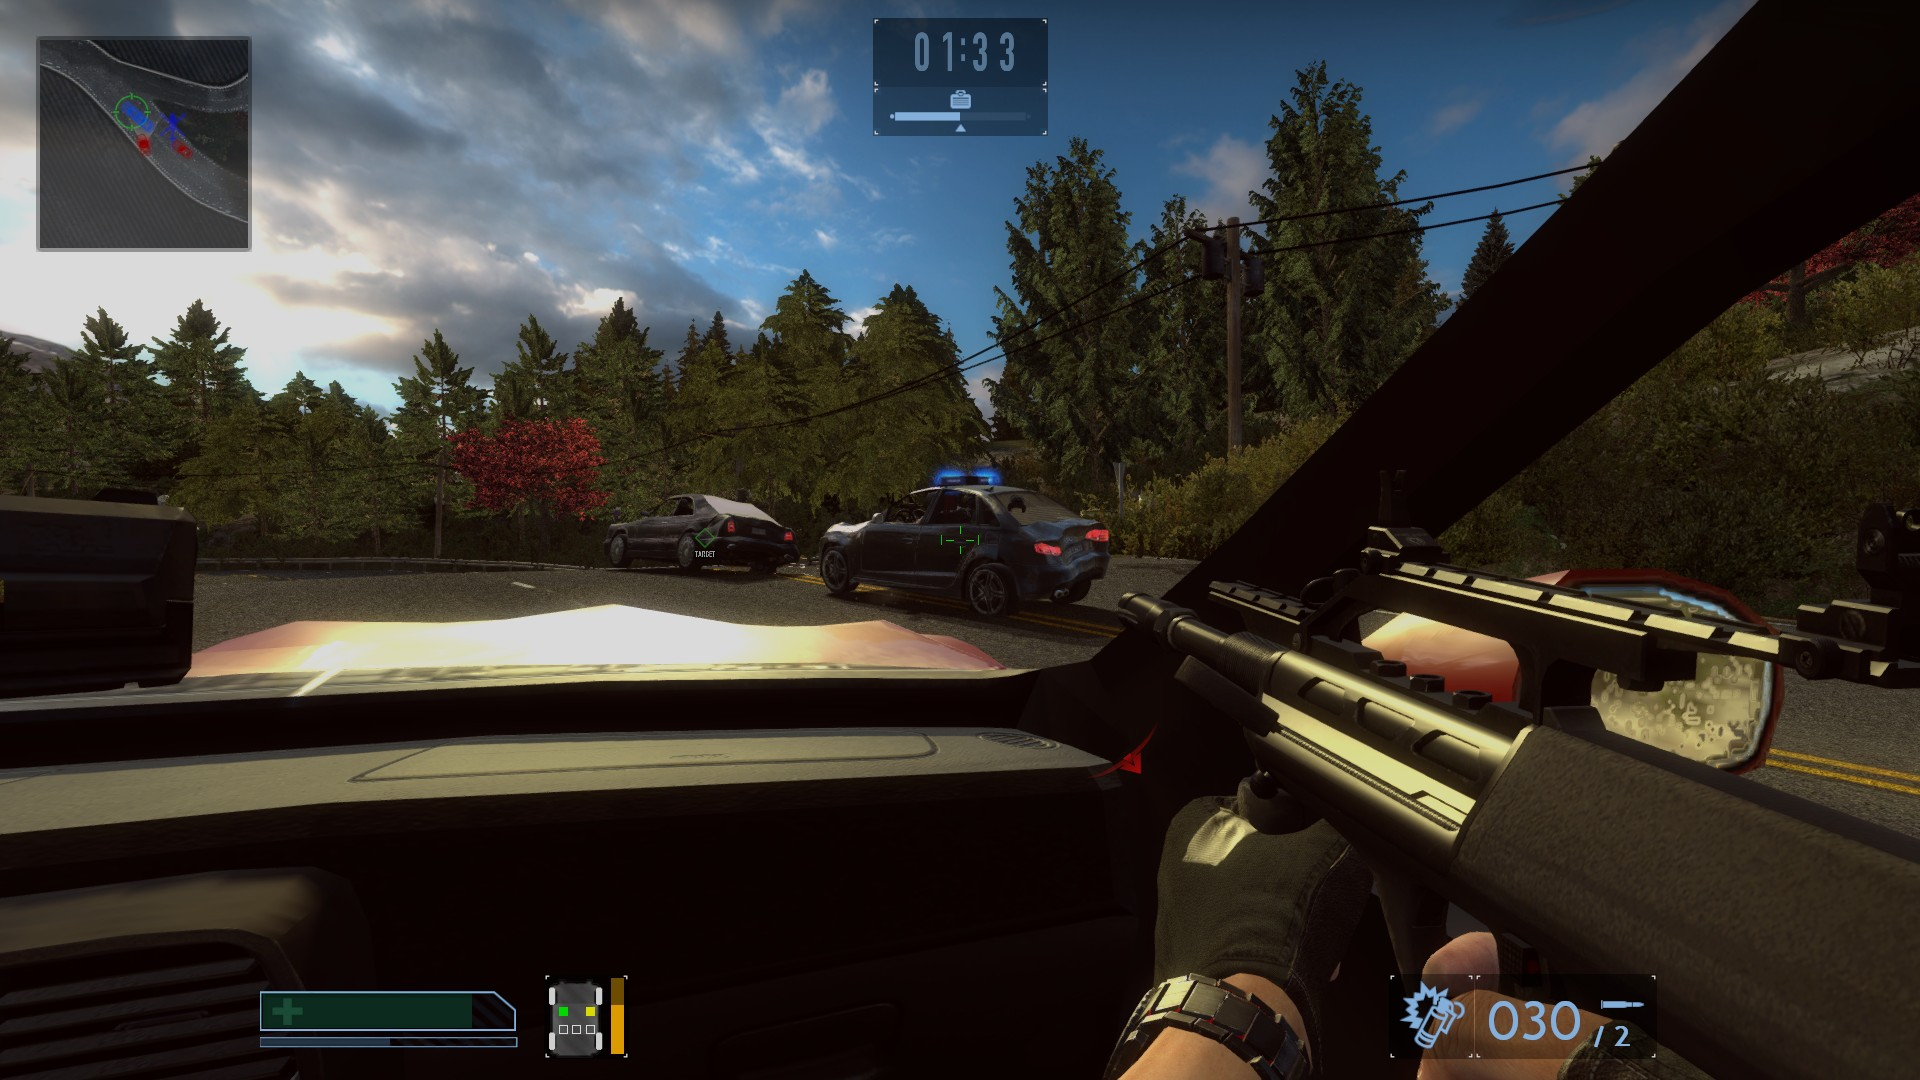 TACTICAL-INTERVENTION-Screenshot-Infamous-Highway-Mission-3.13.13-11.jpg